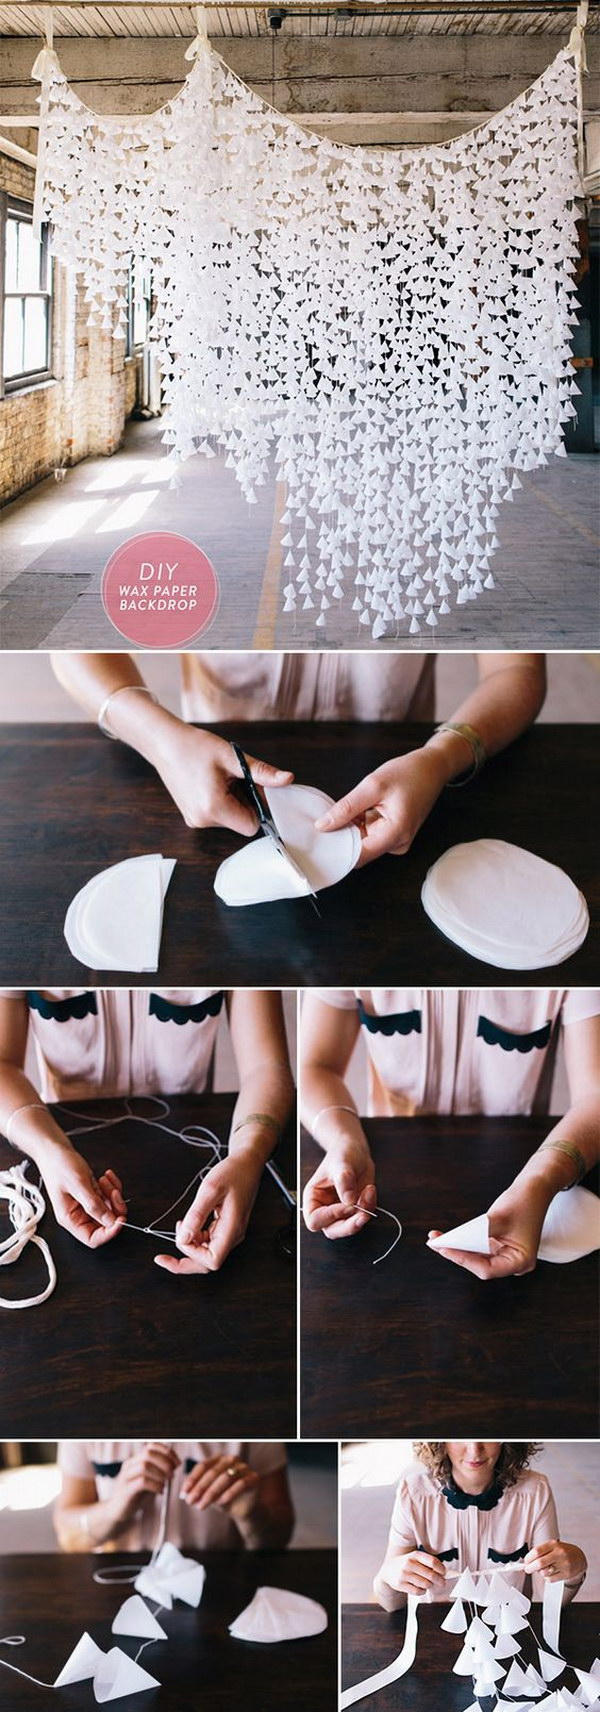 DIY Wax Paper Photo Booth Backdrop